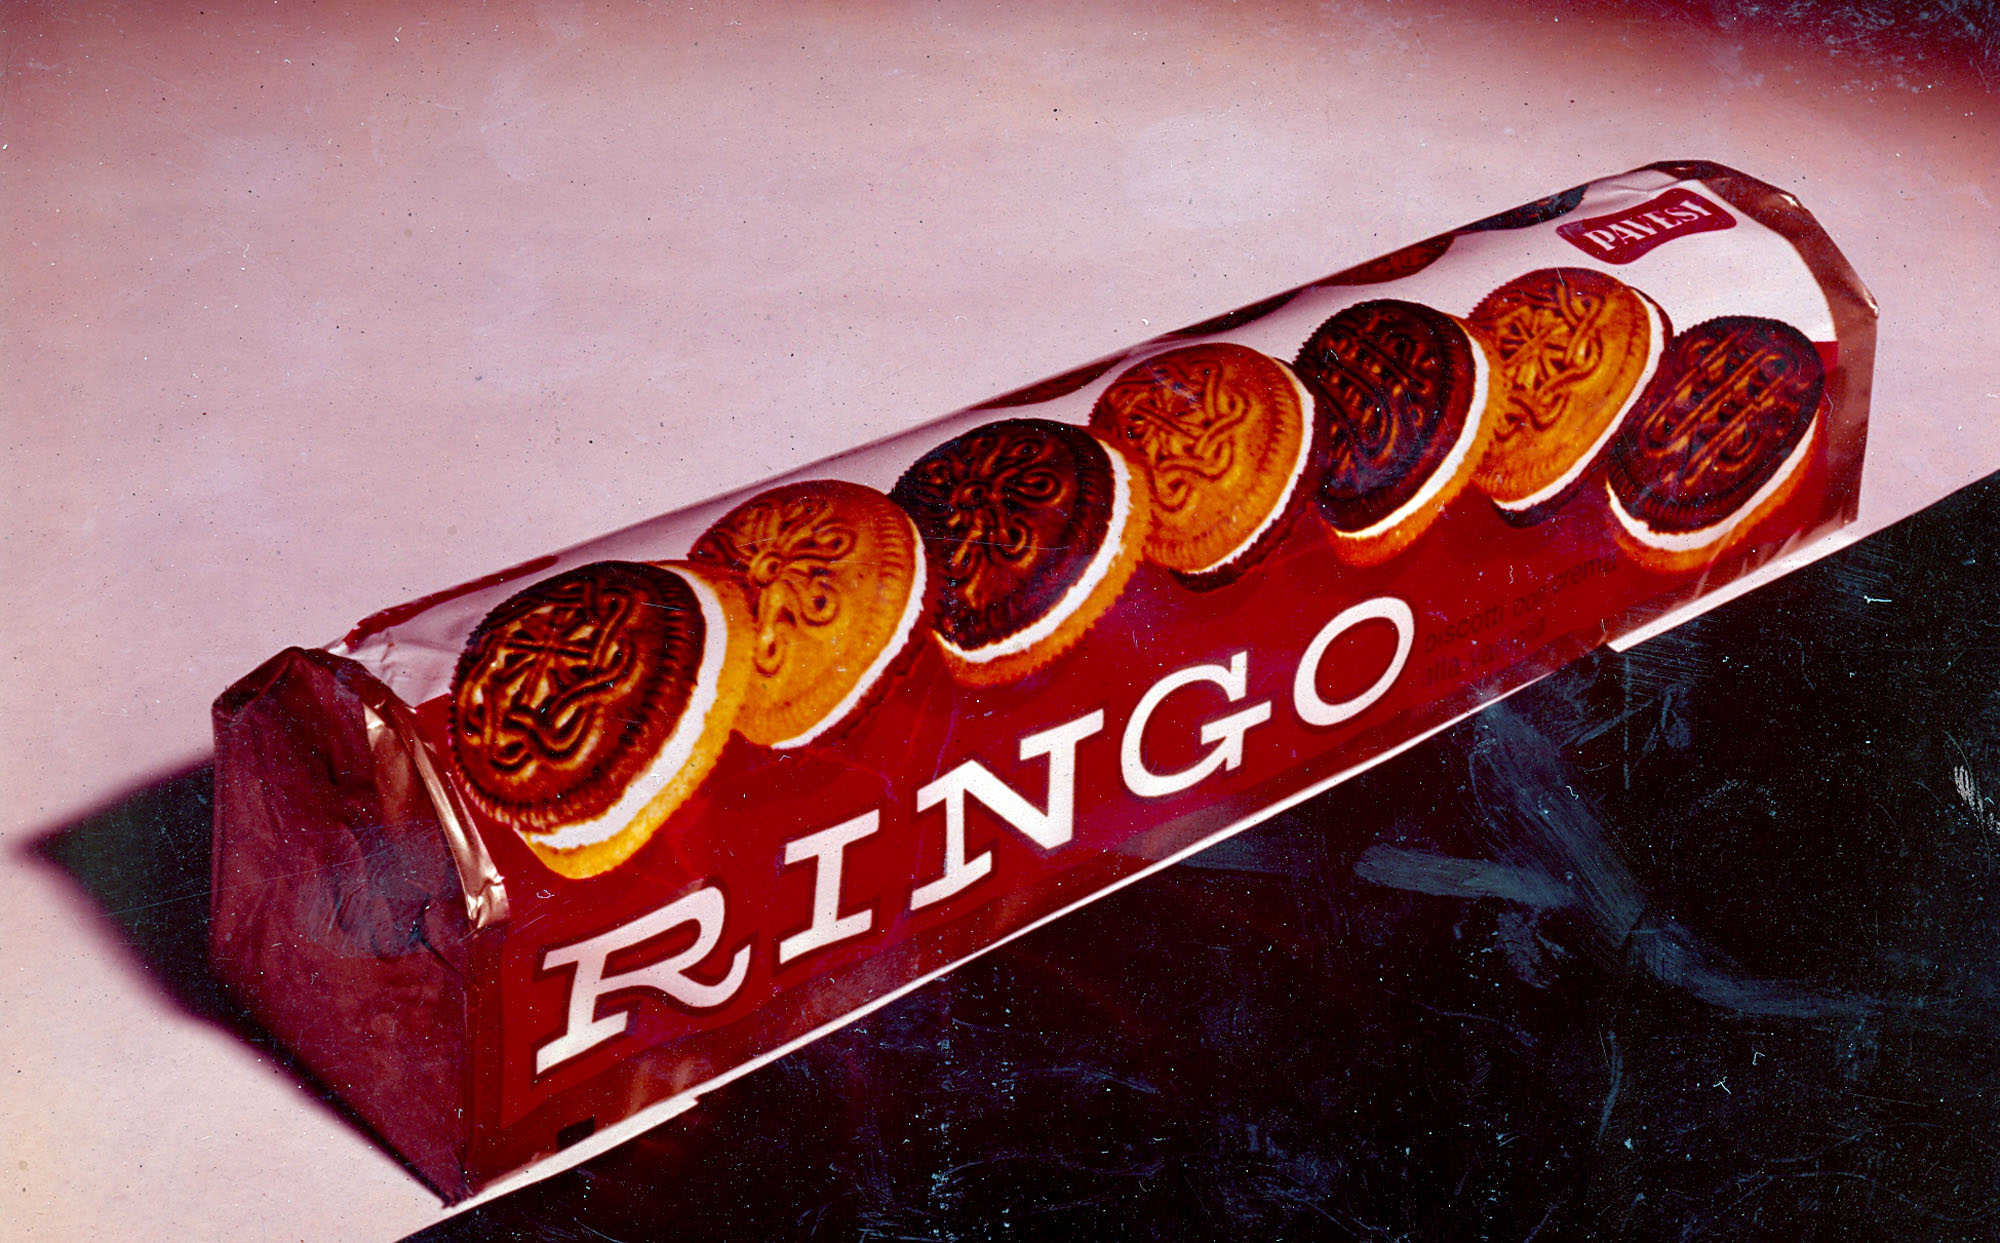 The first Ringo packaging in 1967 highlighting the double color of the biscuits